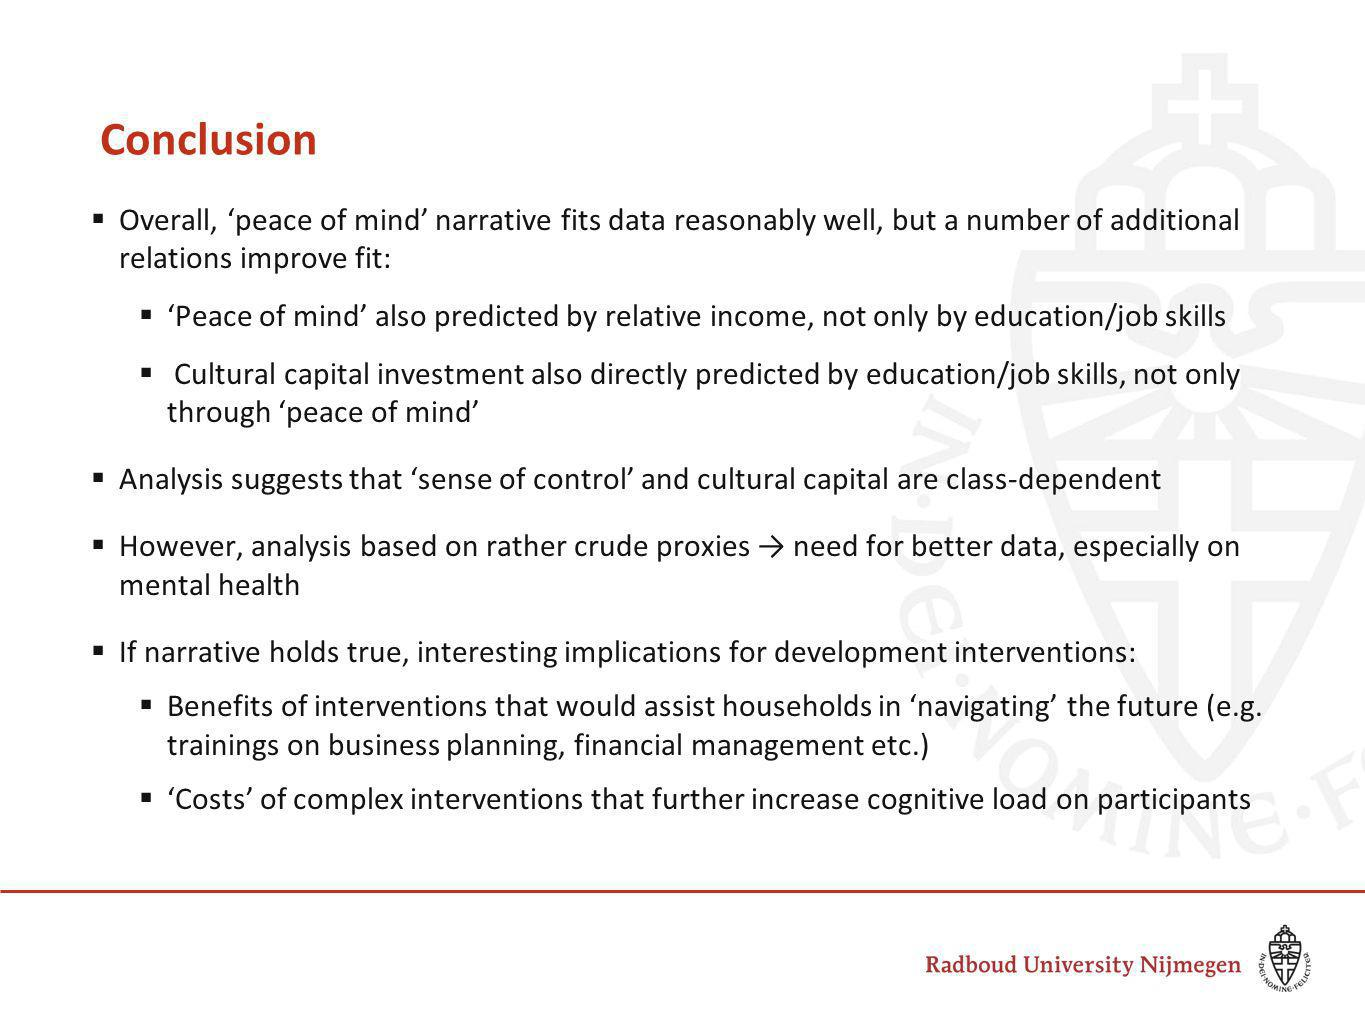 Conclusion  Overall, 'peace of mind' narrative fits data reasonably well, but a number of additional relations improve fit:  'Peace of mind' also predicted by relative income, not only by education/job skills  Cultural capital investment also directly predicted by education/job skills, not only through 'peace of mind'  Analysis suggests that 'sense of control' and cultural capital are class-dependent  However, analysis based on rather crude proxies → need for better data, especially on mental health  If narrative holds true, interesting implications for development interventions:  Benefits of interventions that would assist households in 'navigating' the future (e.g.